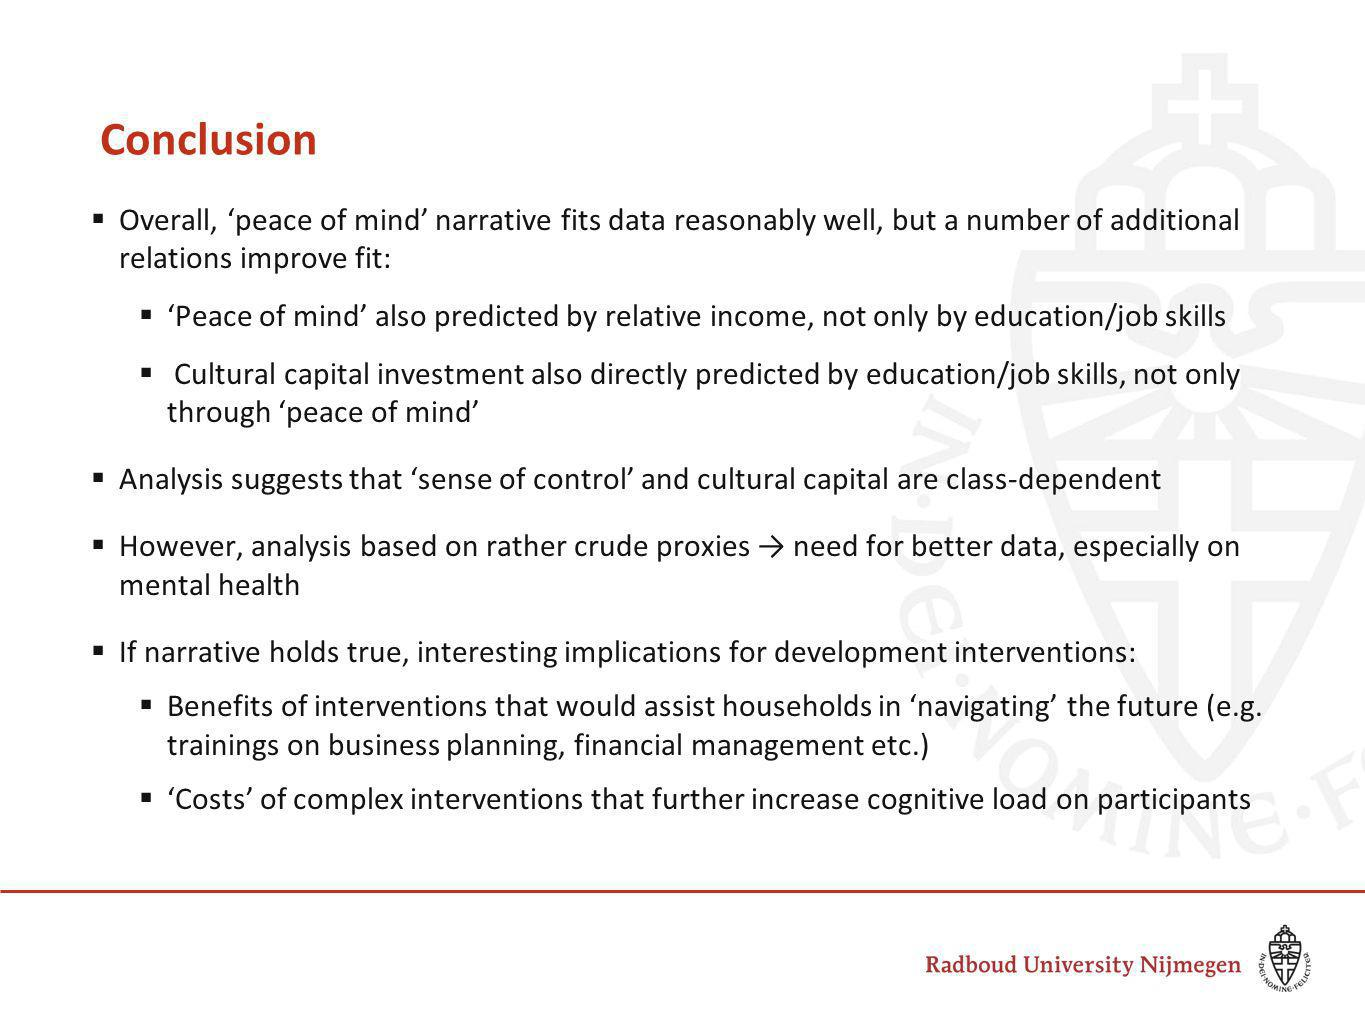 Conclusion  Overall, 'peace of mind' narrative fits data reasonably well, but a number of additional relations improve fit:  'Peace of mind' also predicted by relative income, not only by education/job skills  Cultural capital investment also directly predicted by education/job skills, not only through 'peace of mind'  Analysis suggests that 'sense of control' and cultural capital are class-dependent  However, analysis based on rather crude proxies → need for better data, especially on mental health  If narrative holds true, interesting implications for development interventions:  Benefits of interventions that would assist households in 'navigating' the future (e.g.